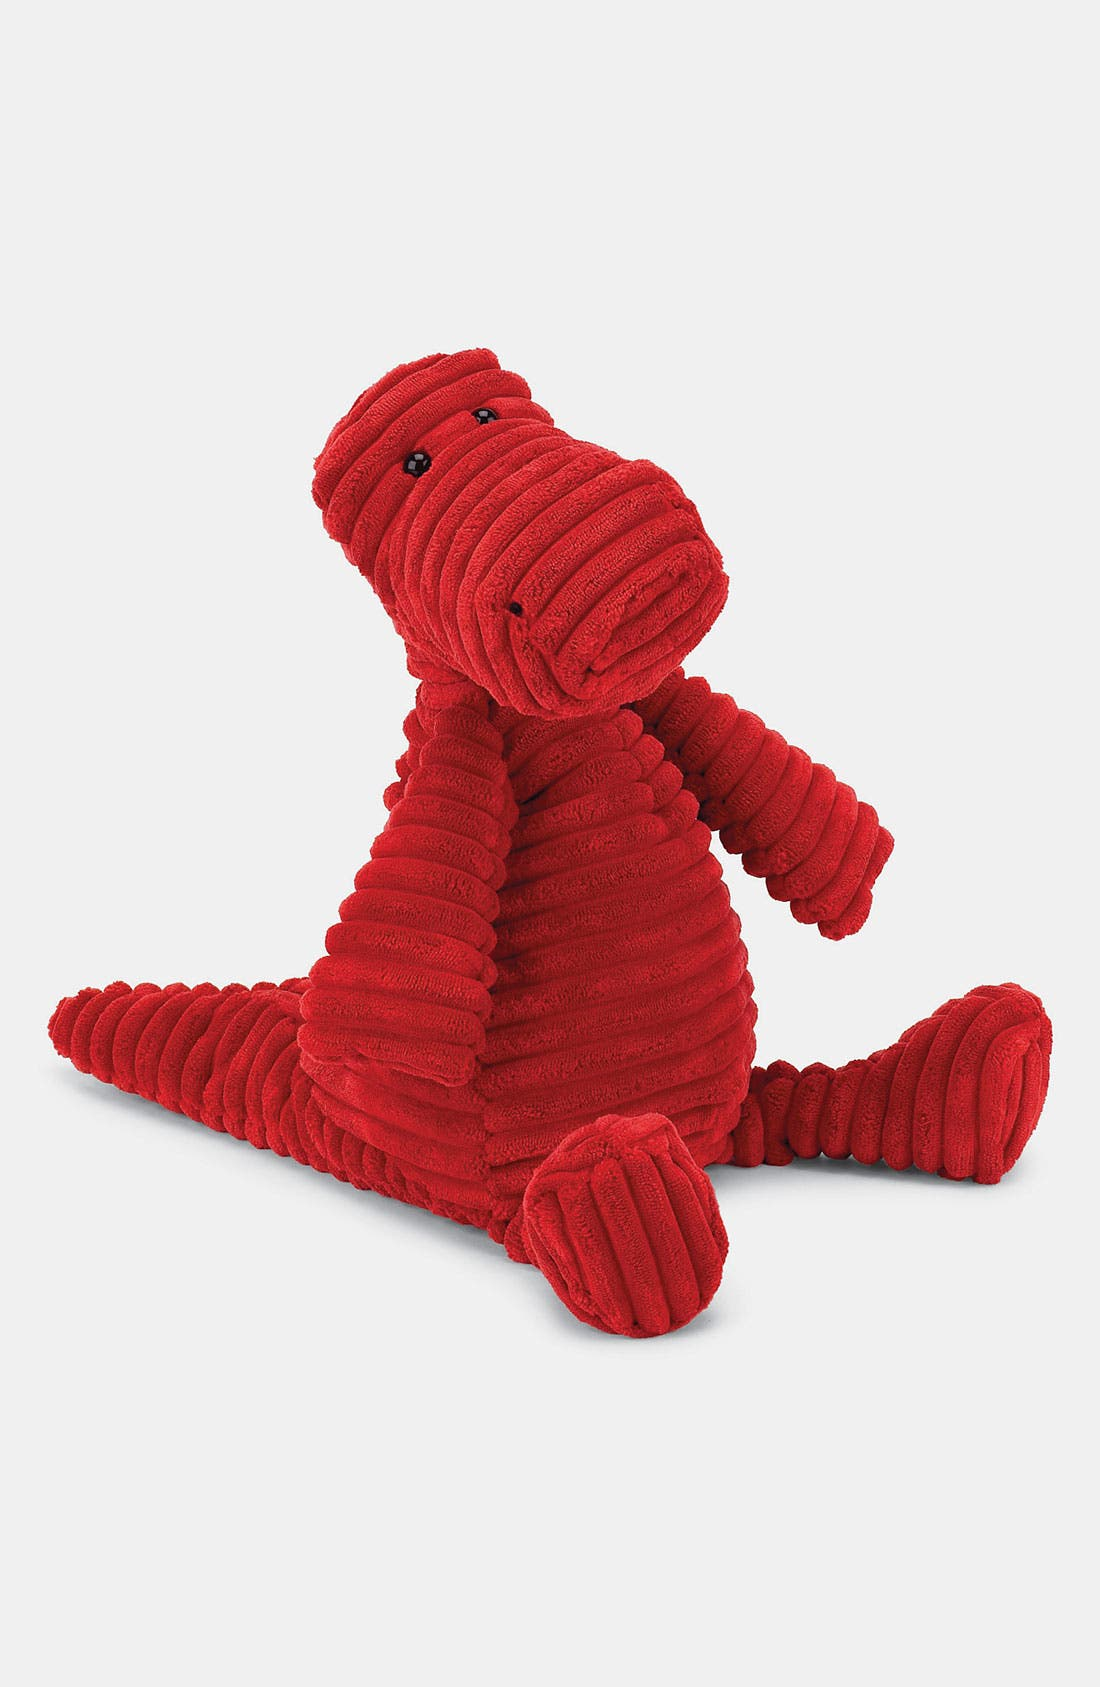 Alternate Image 1 Selected - Jellycat 'Cordy Roy' Dinosaur Stuffed Animal